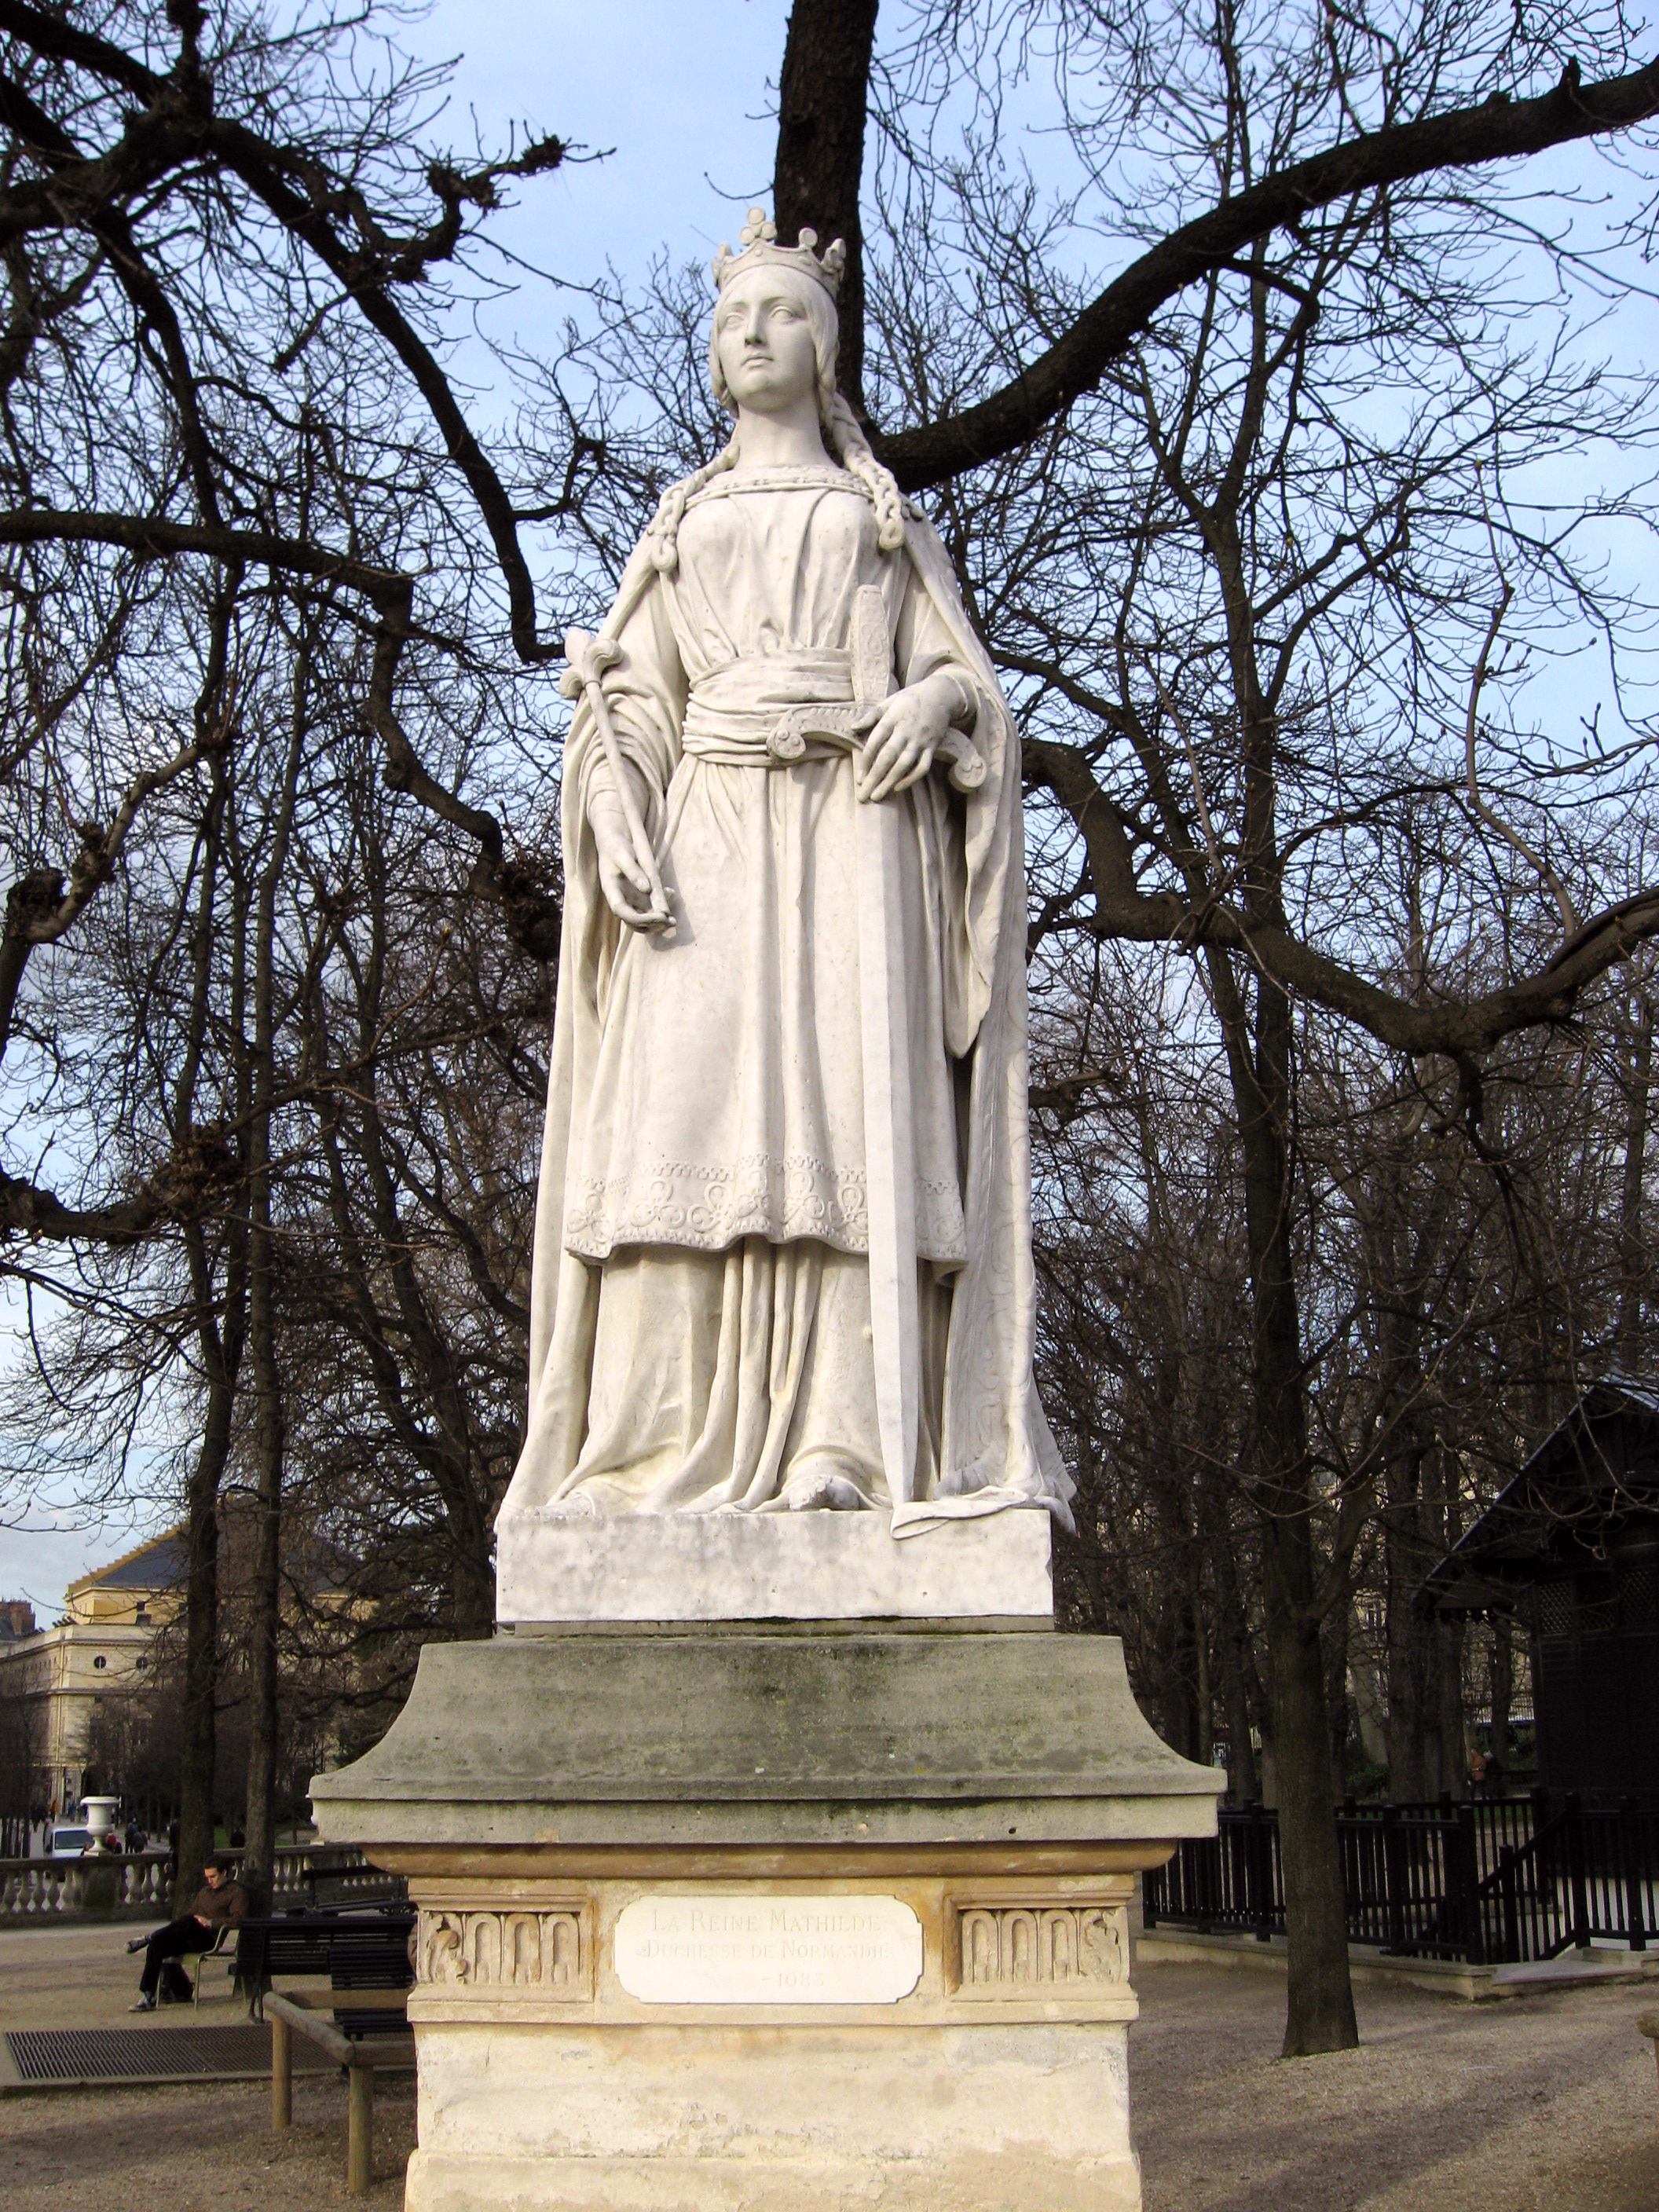 Statue of Mathilda of Flanders in Paris, By Tosca - Own work, CC BY-SA 3.0,  https://commons.wikimedia.org/w/index.php?curid=2104003